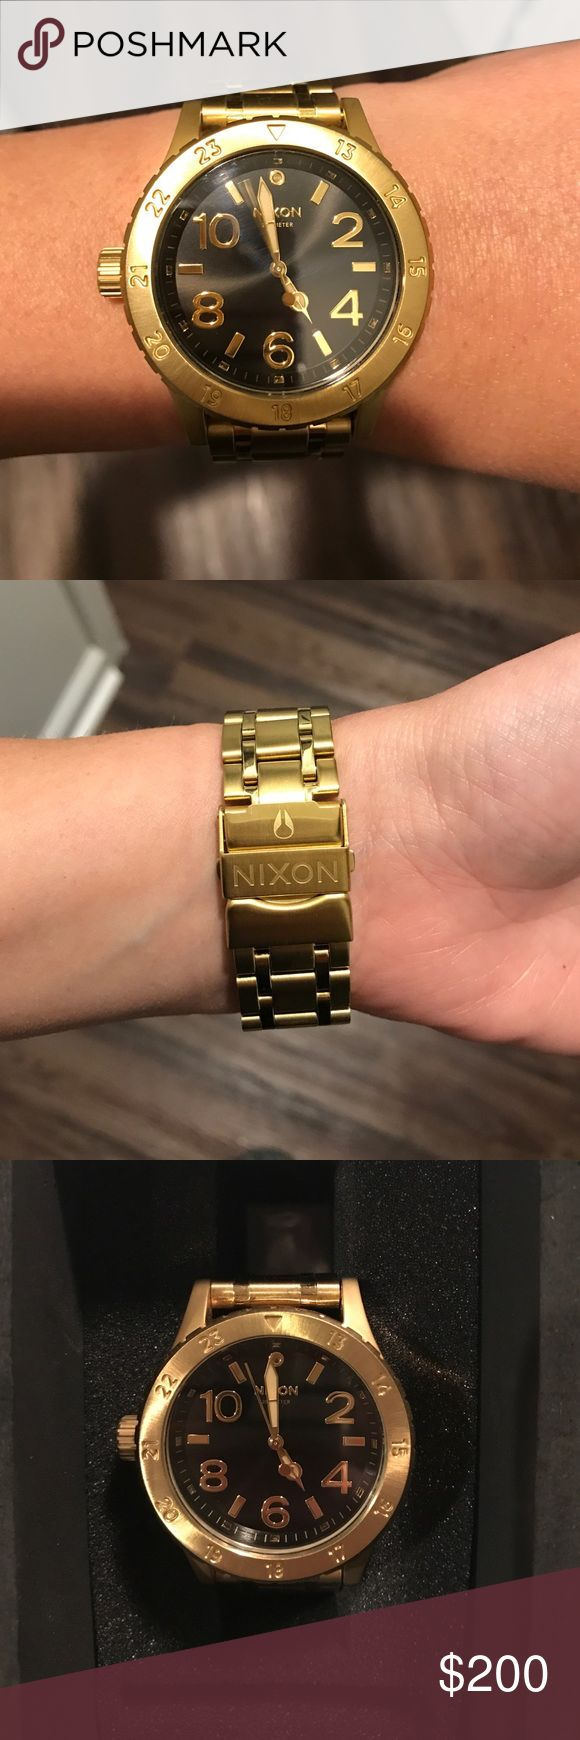 Black & Gold Nixon Women's Watch + Black & Gold + Comes with original box, extra links and price tag + Worn only a few times, no scratches, like new condition  + Super nice / heavy feeling + Smoke free and pet free home 🏡   ✨ If you would like any additional photos or if you have any questions... please let me know!  ✨ No trades but I will consider all fair offers! Nixon Accessories Watches